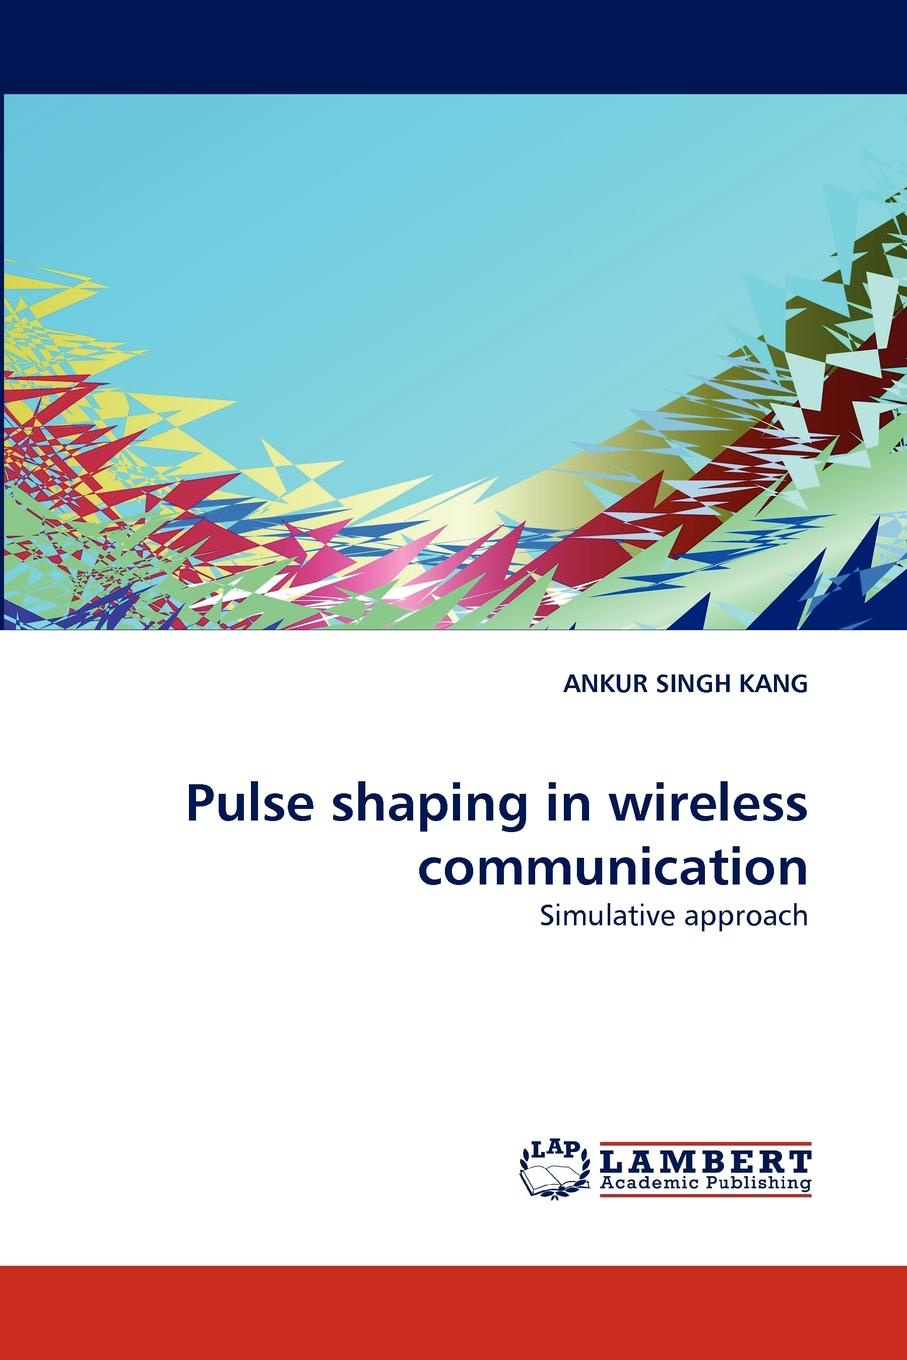 ANKUR SINGH KANG Pulse shaping in wireless communication pulse oximeter using aduc842 microcontroller